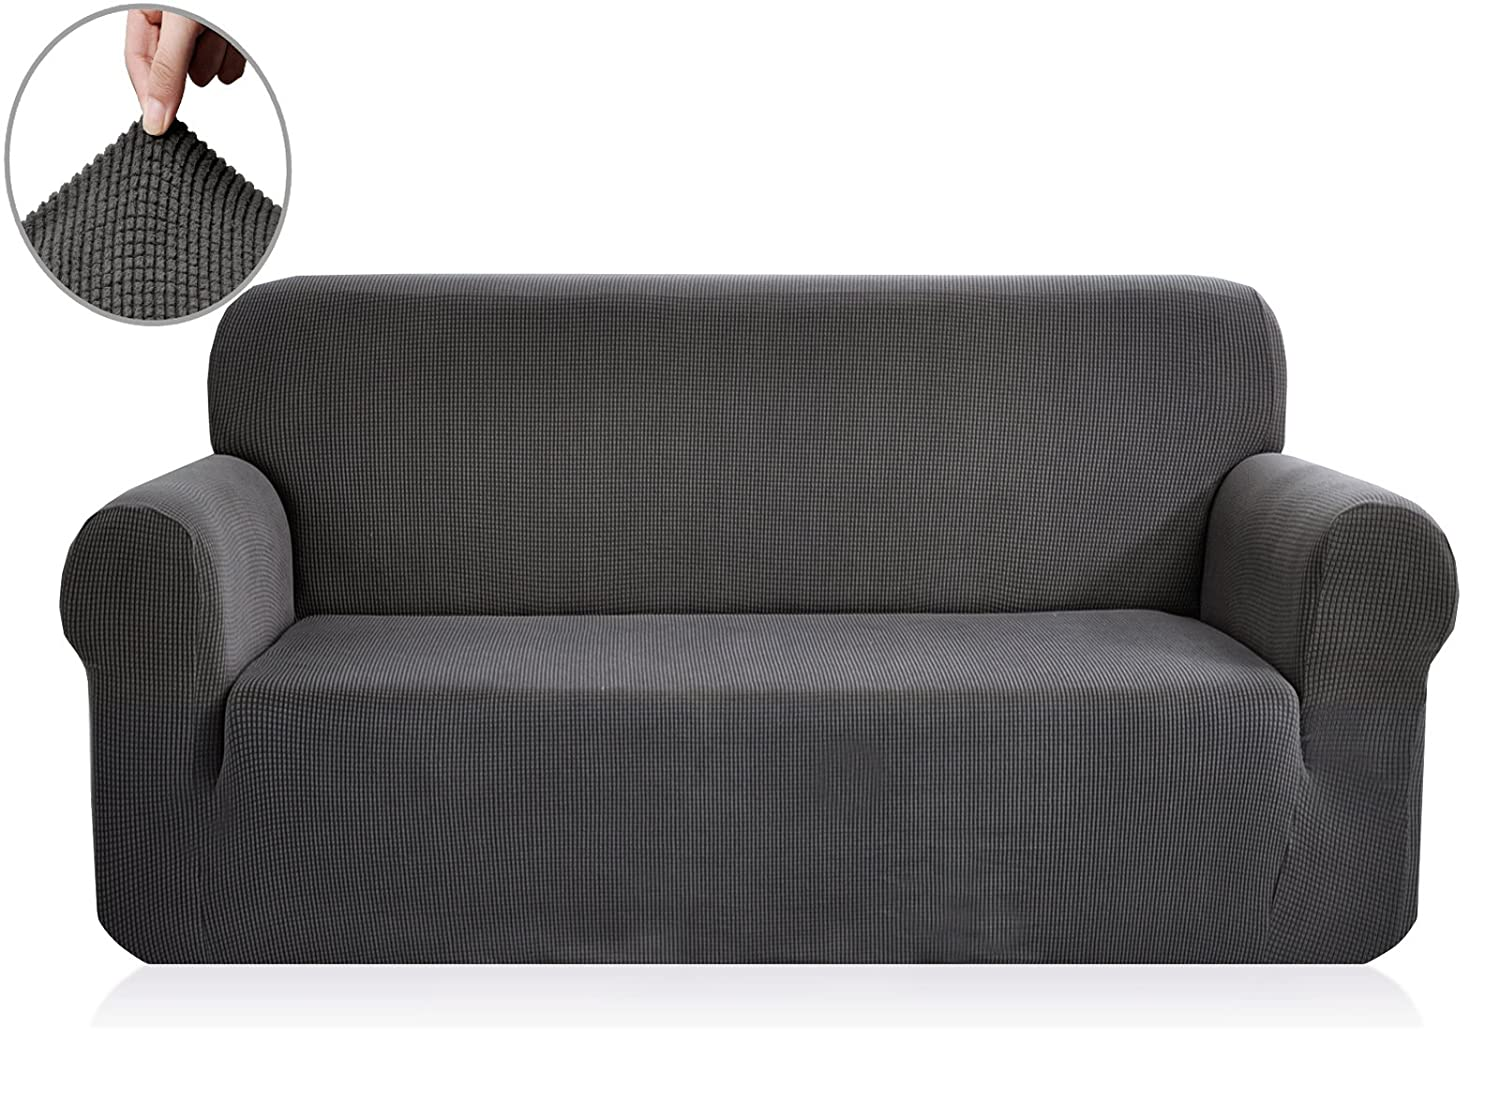 (XL Sofa, Gray) - CHUN YI Jacquard Sofa Covers 1-Piece Polyester Spandex Fabric Slipcover (XL Sofa, Grey) B07BF4H6BH XL Sofa|グレー グレー XL Sofa